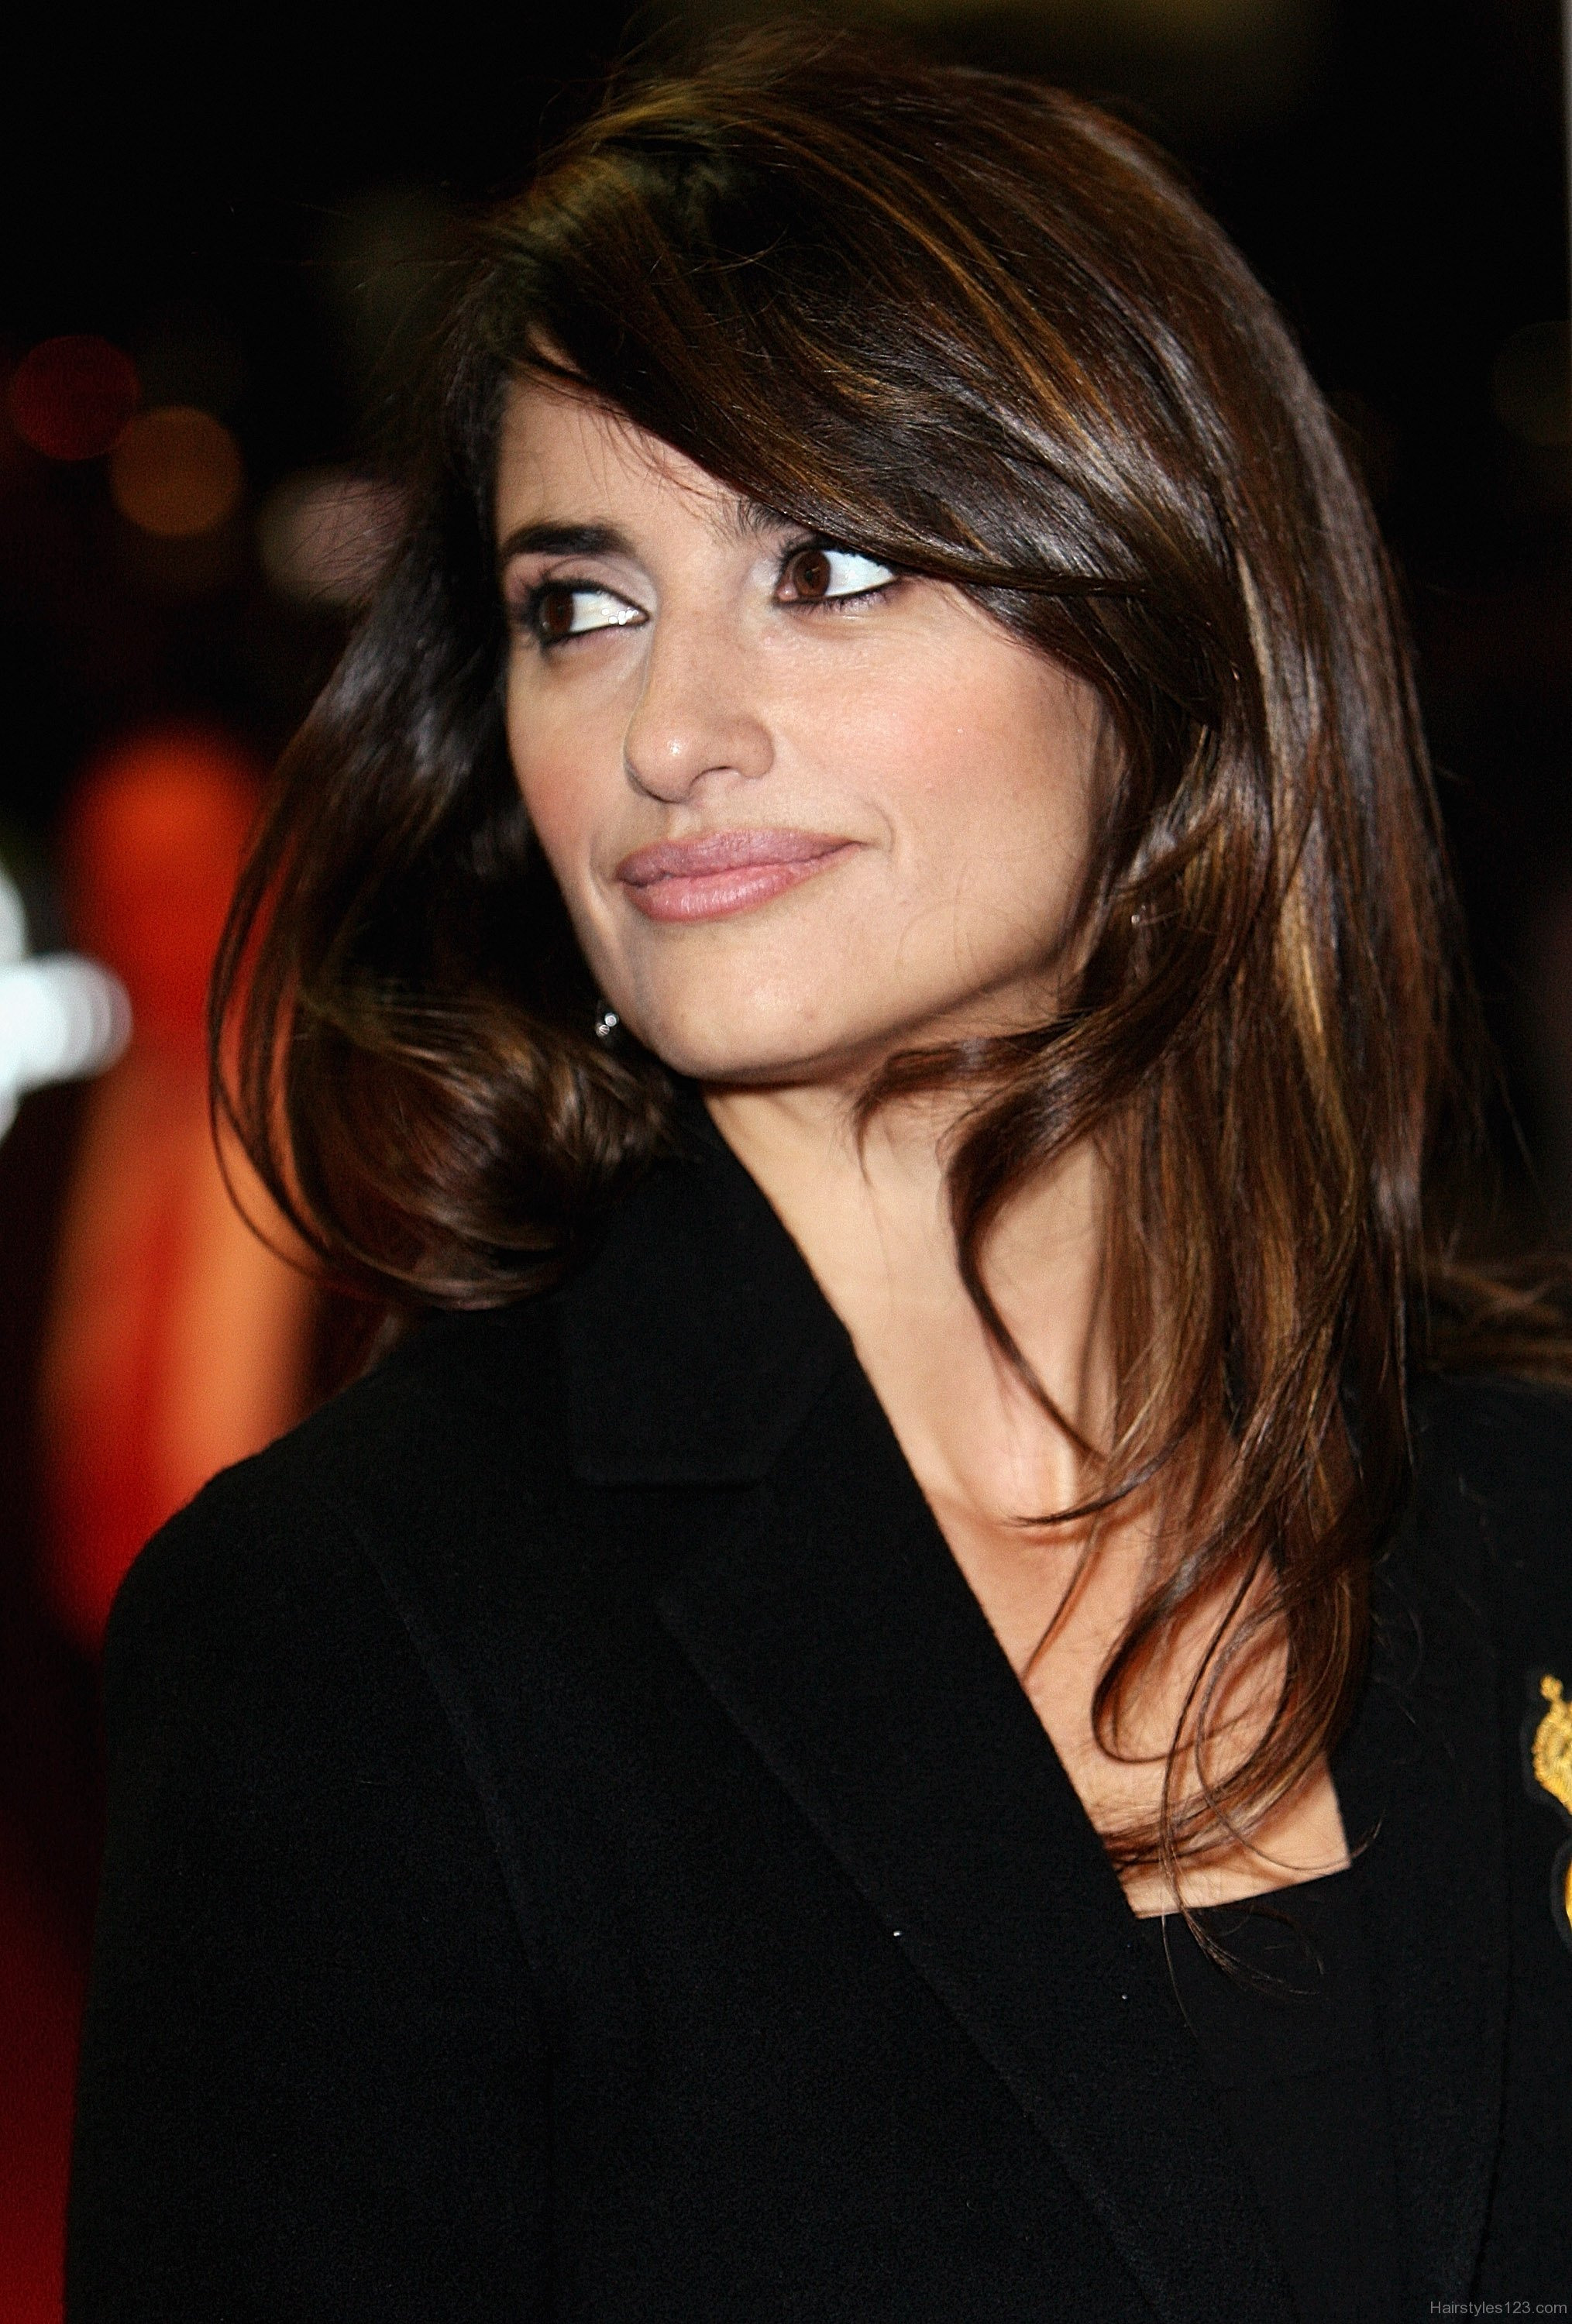 The Change of Look of Penelope Cruz